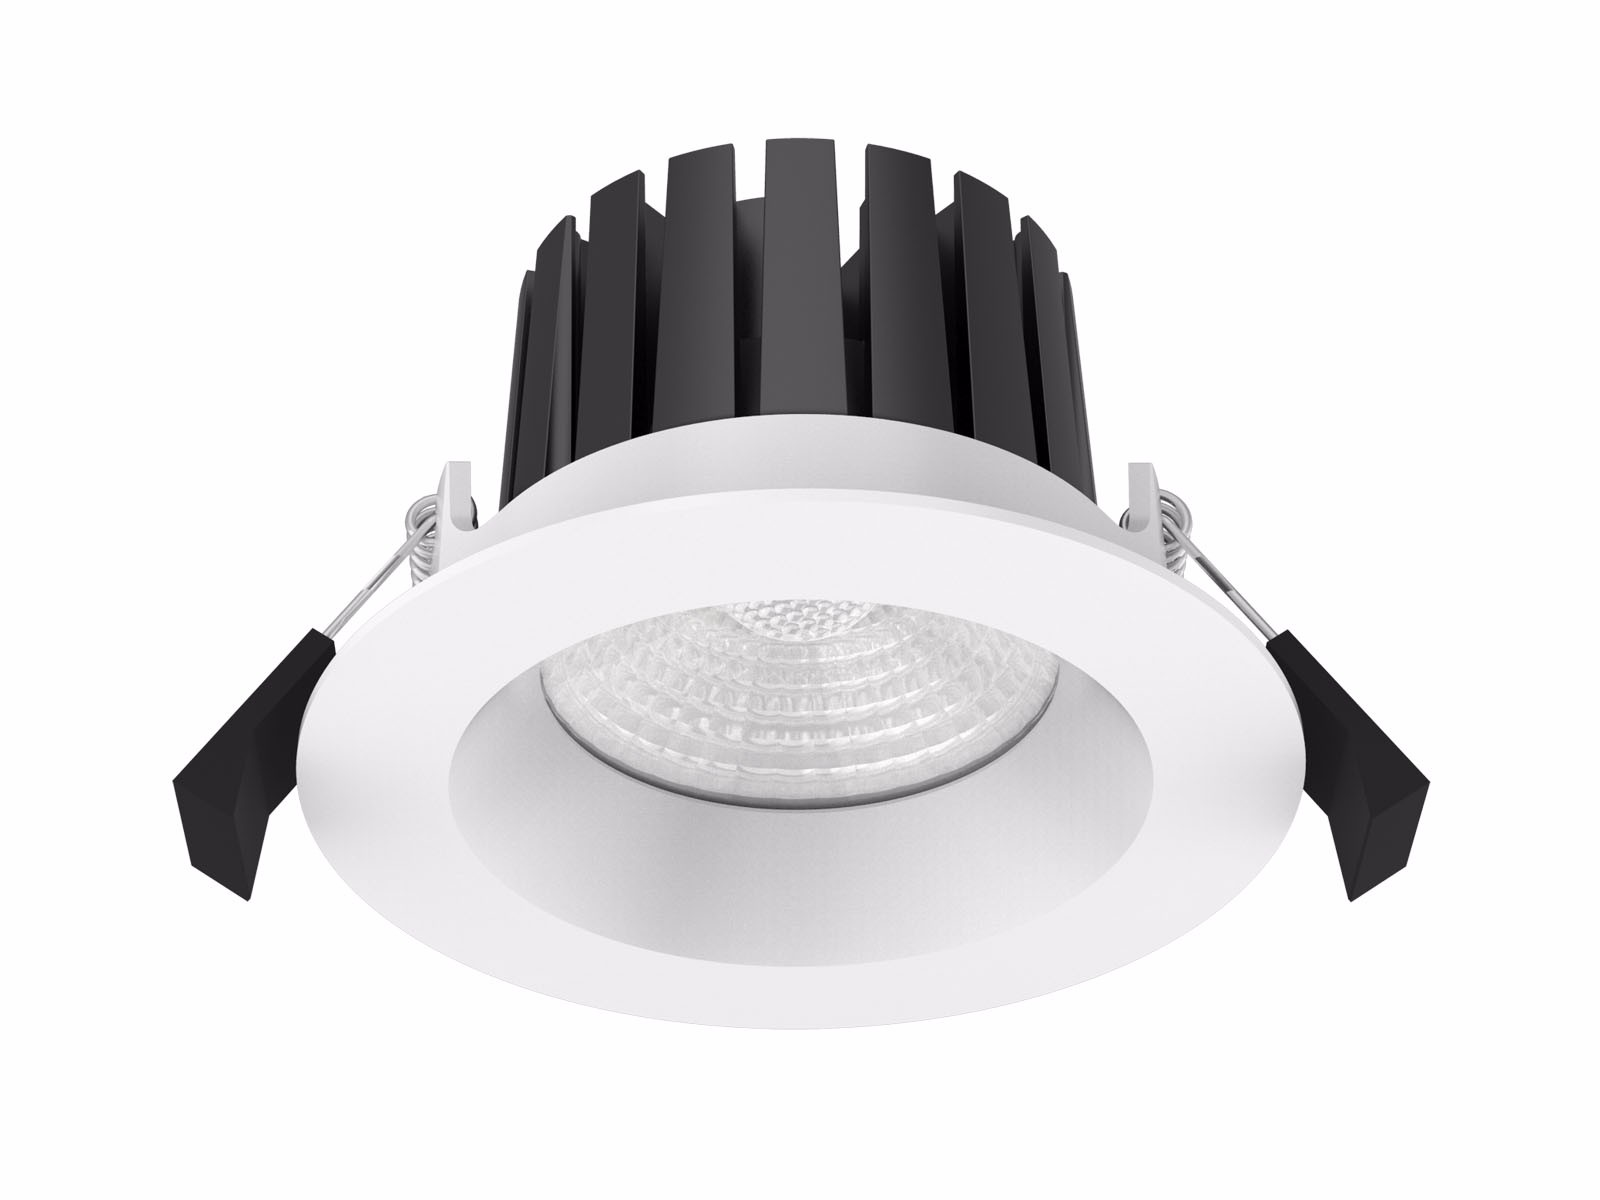 DL103 LED Downlight